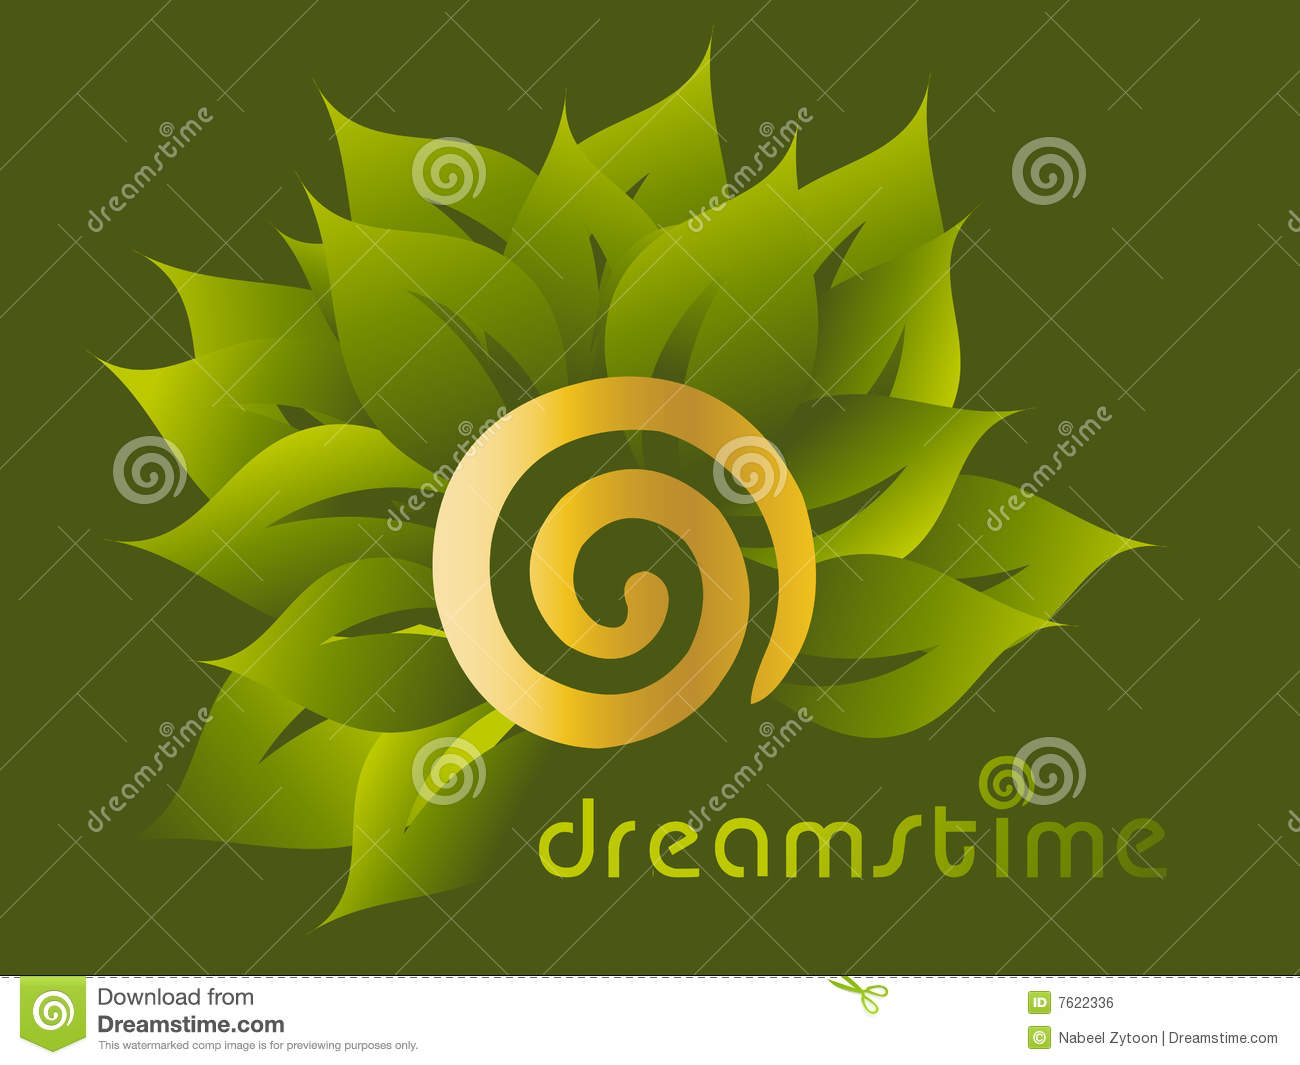 Dreamstime flower royalty free stock image image 7622336